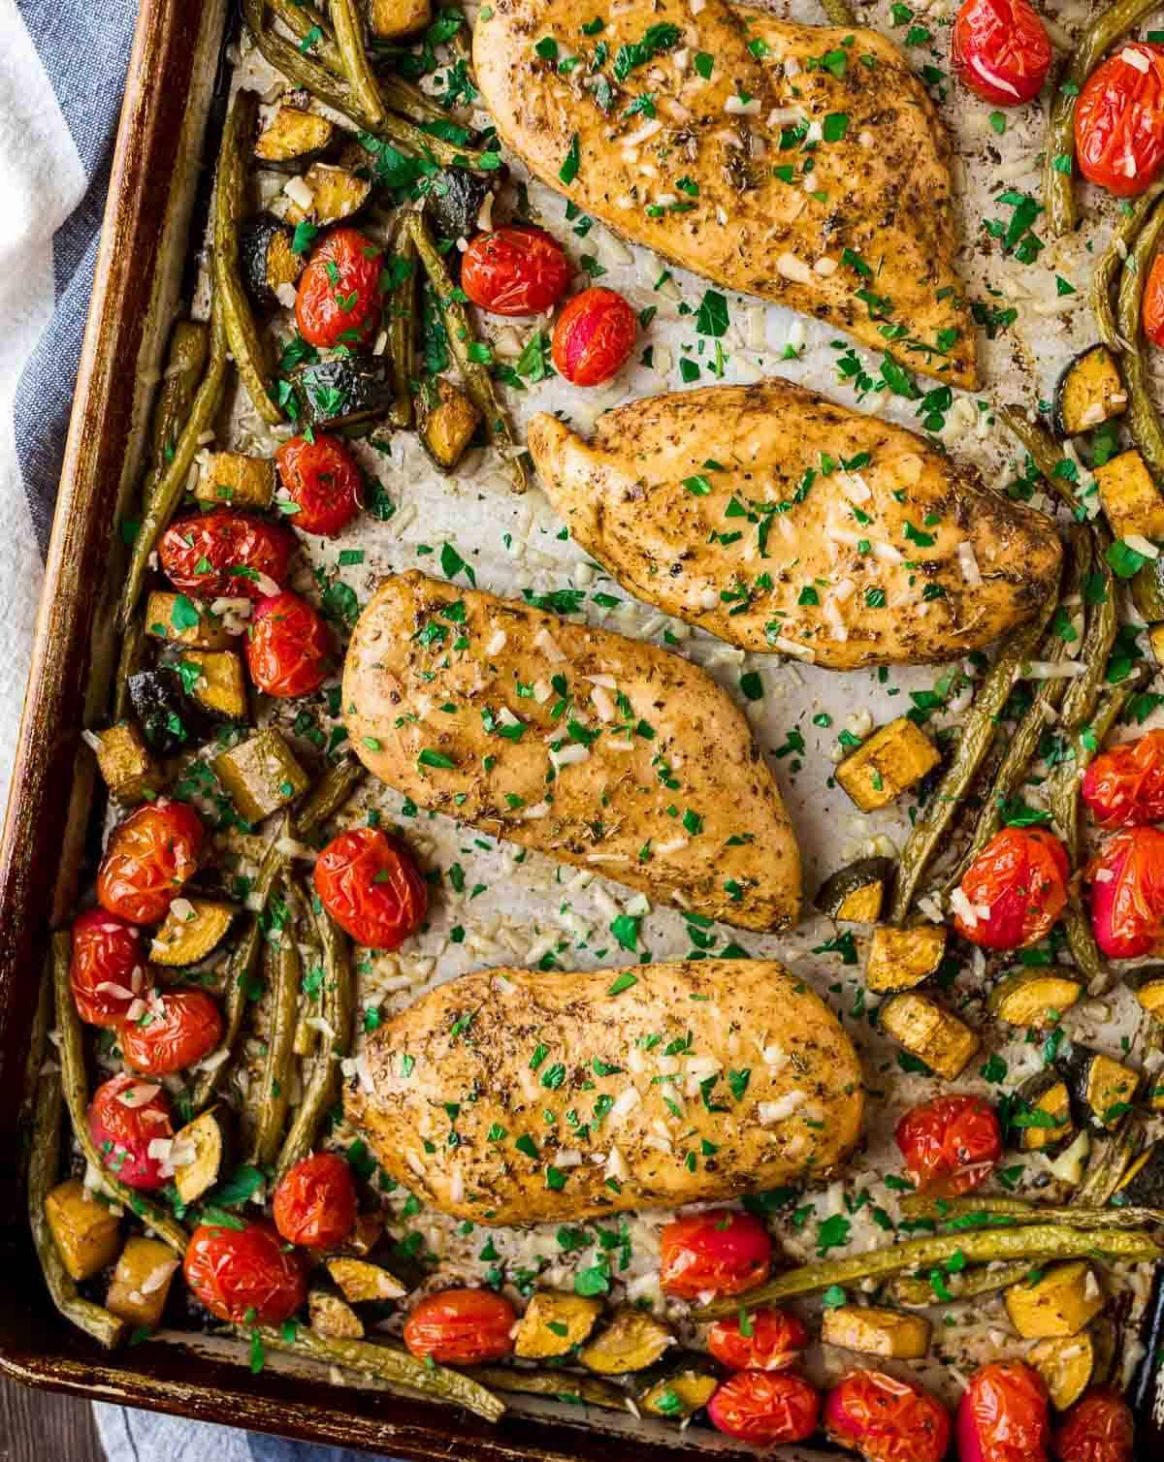 Sheet Pan Italian Chicken and Vegetables - Recipe Chicken Breast Tomatoes Peppers